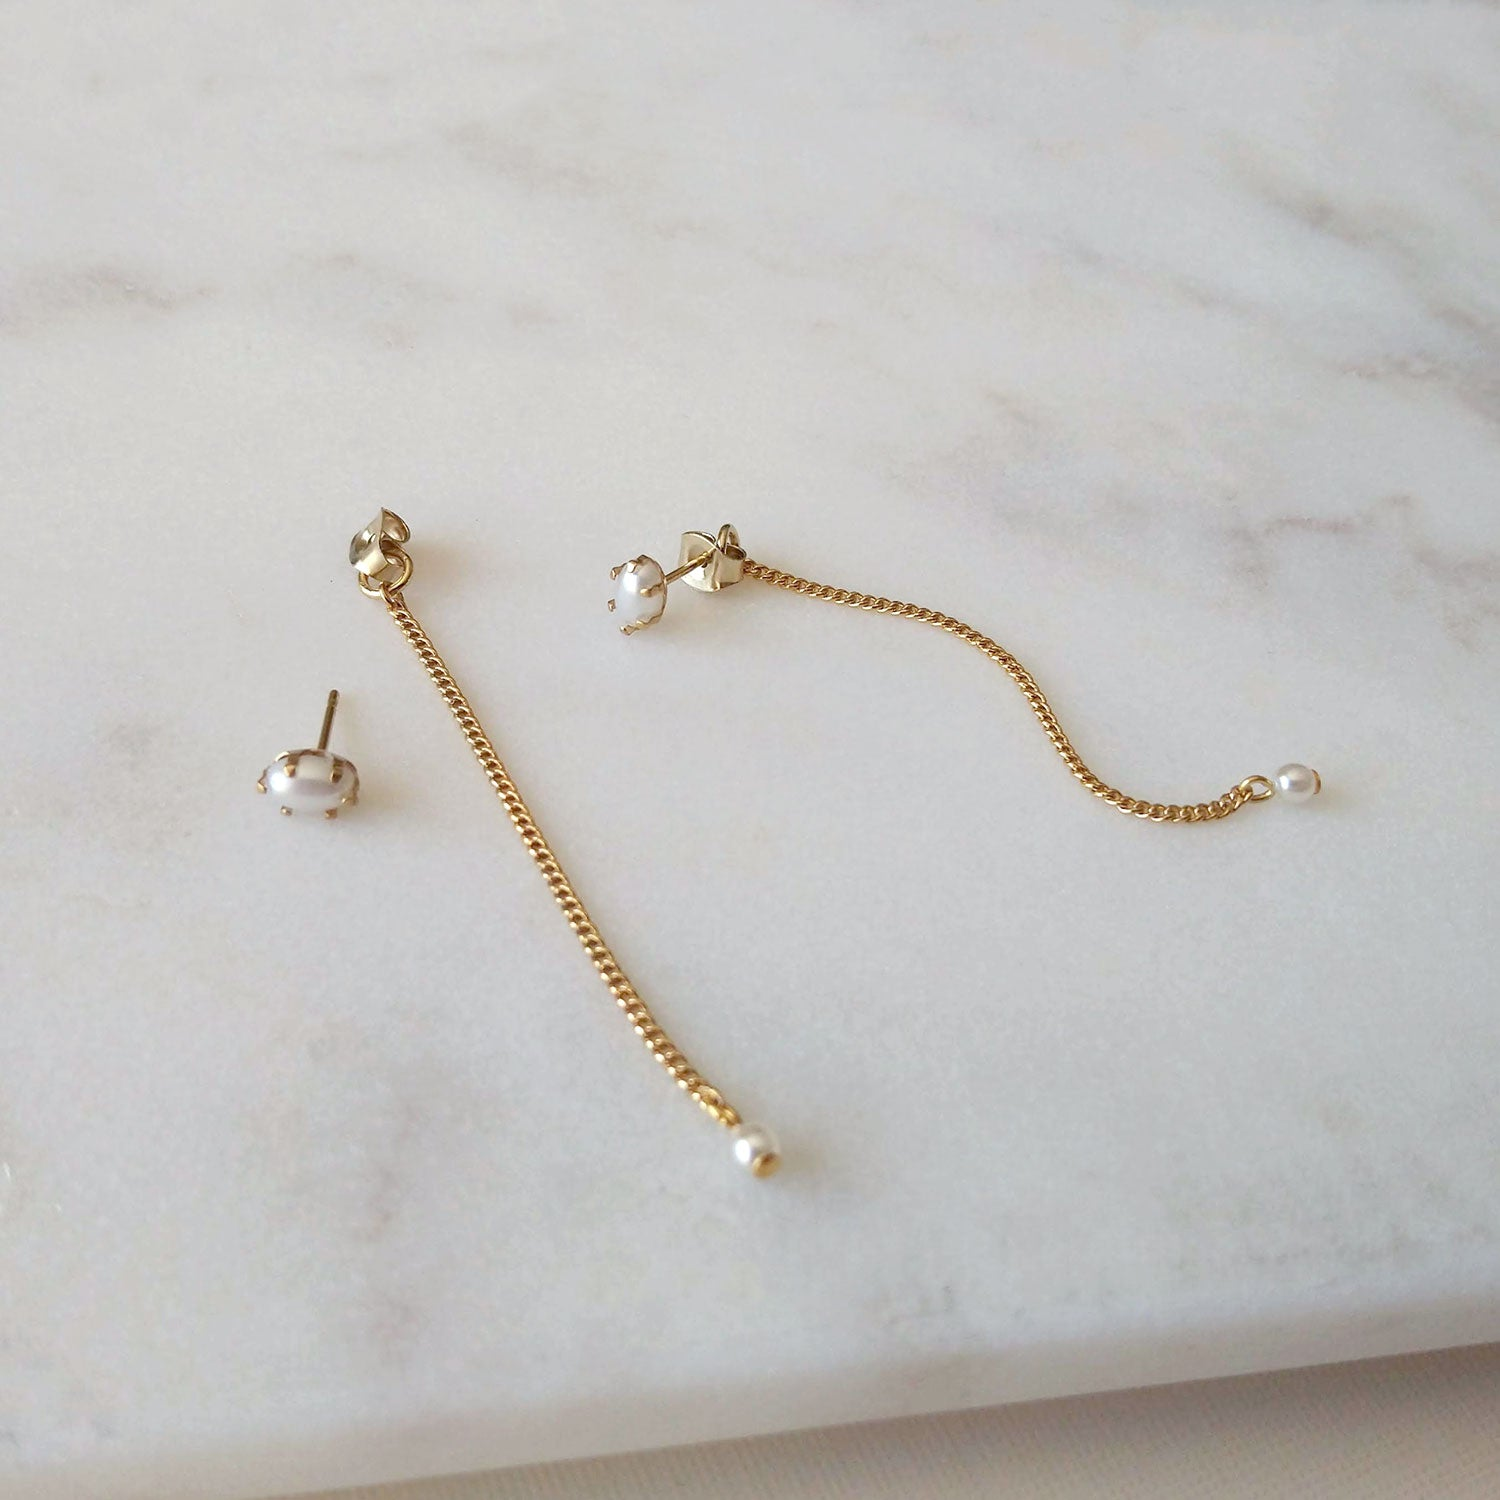 pearl ear posts with chains